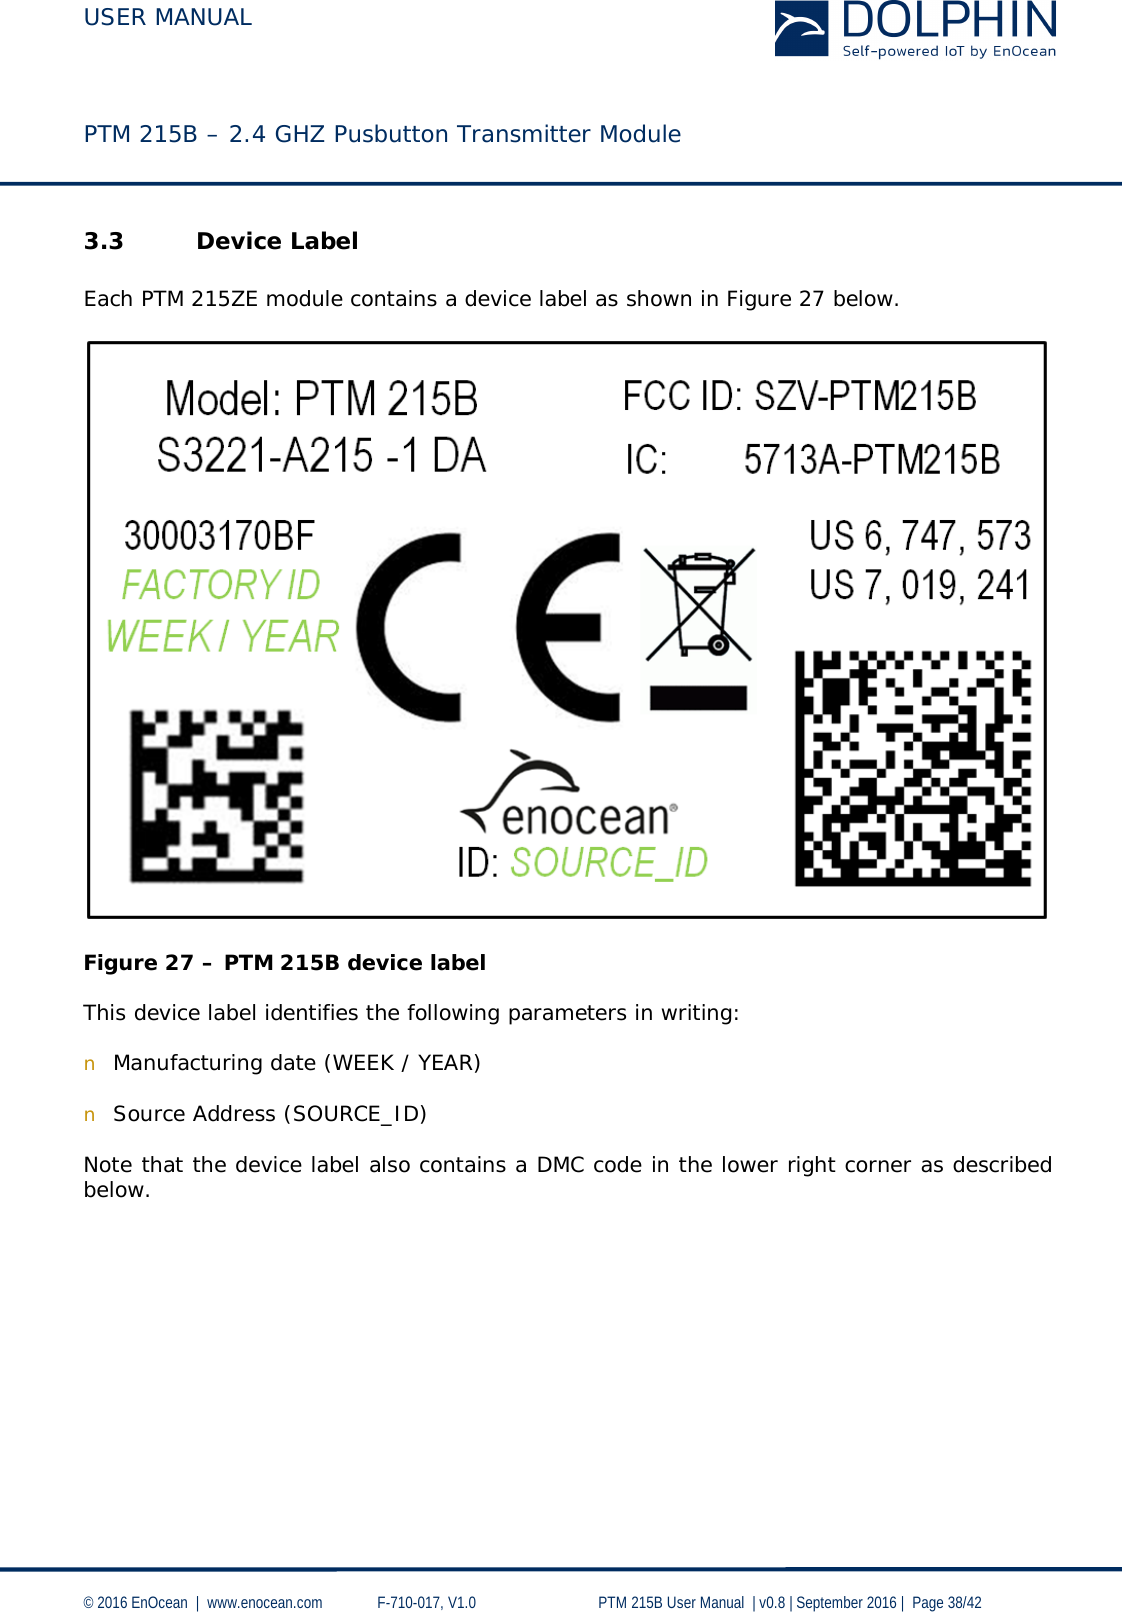 USER MANUAL    PTM 215B – 2.4 GHZ Pusbutton Transmitter Module  © 2016 EnOcean     www.enocean.com   F-710-017, V1.0        PTM 215B User Manual    v0.8   September 2016    Page 38/42  3.3 Device Label  Each PTM 215ZE module contains a device label as shown in Figure 27 below.     Figure 27 – PTM 215B device label  This device label identifies the following parameters in writing:  n Manufacturing date (WEEK / YEAR)  n Source Address (SOURCE_ID)  Note that the device label also contains a DMC code in the lower right corner as described below.